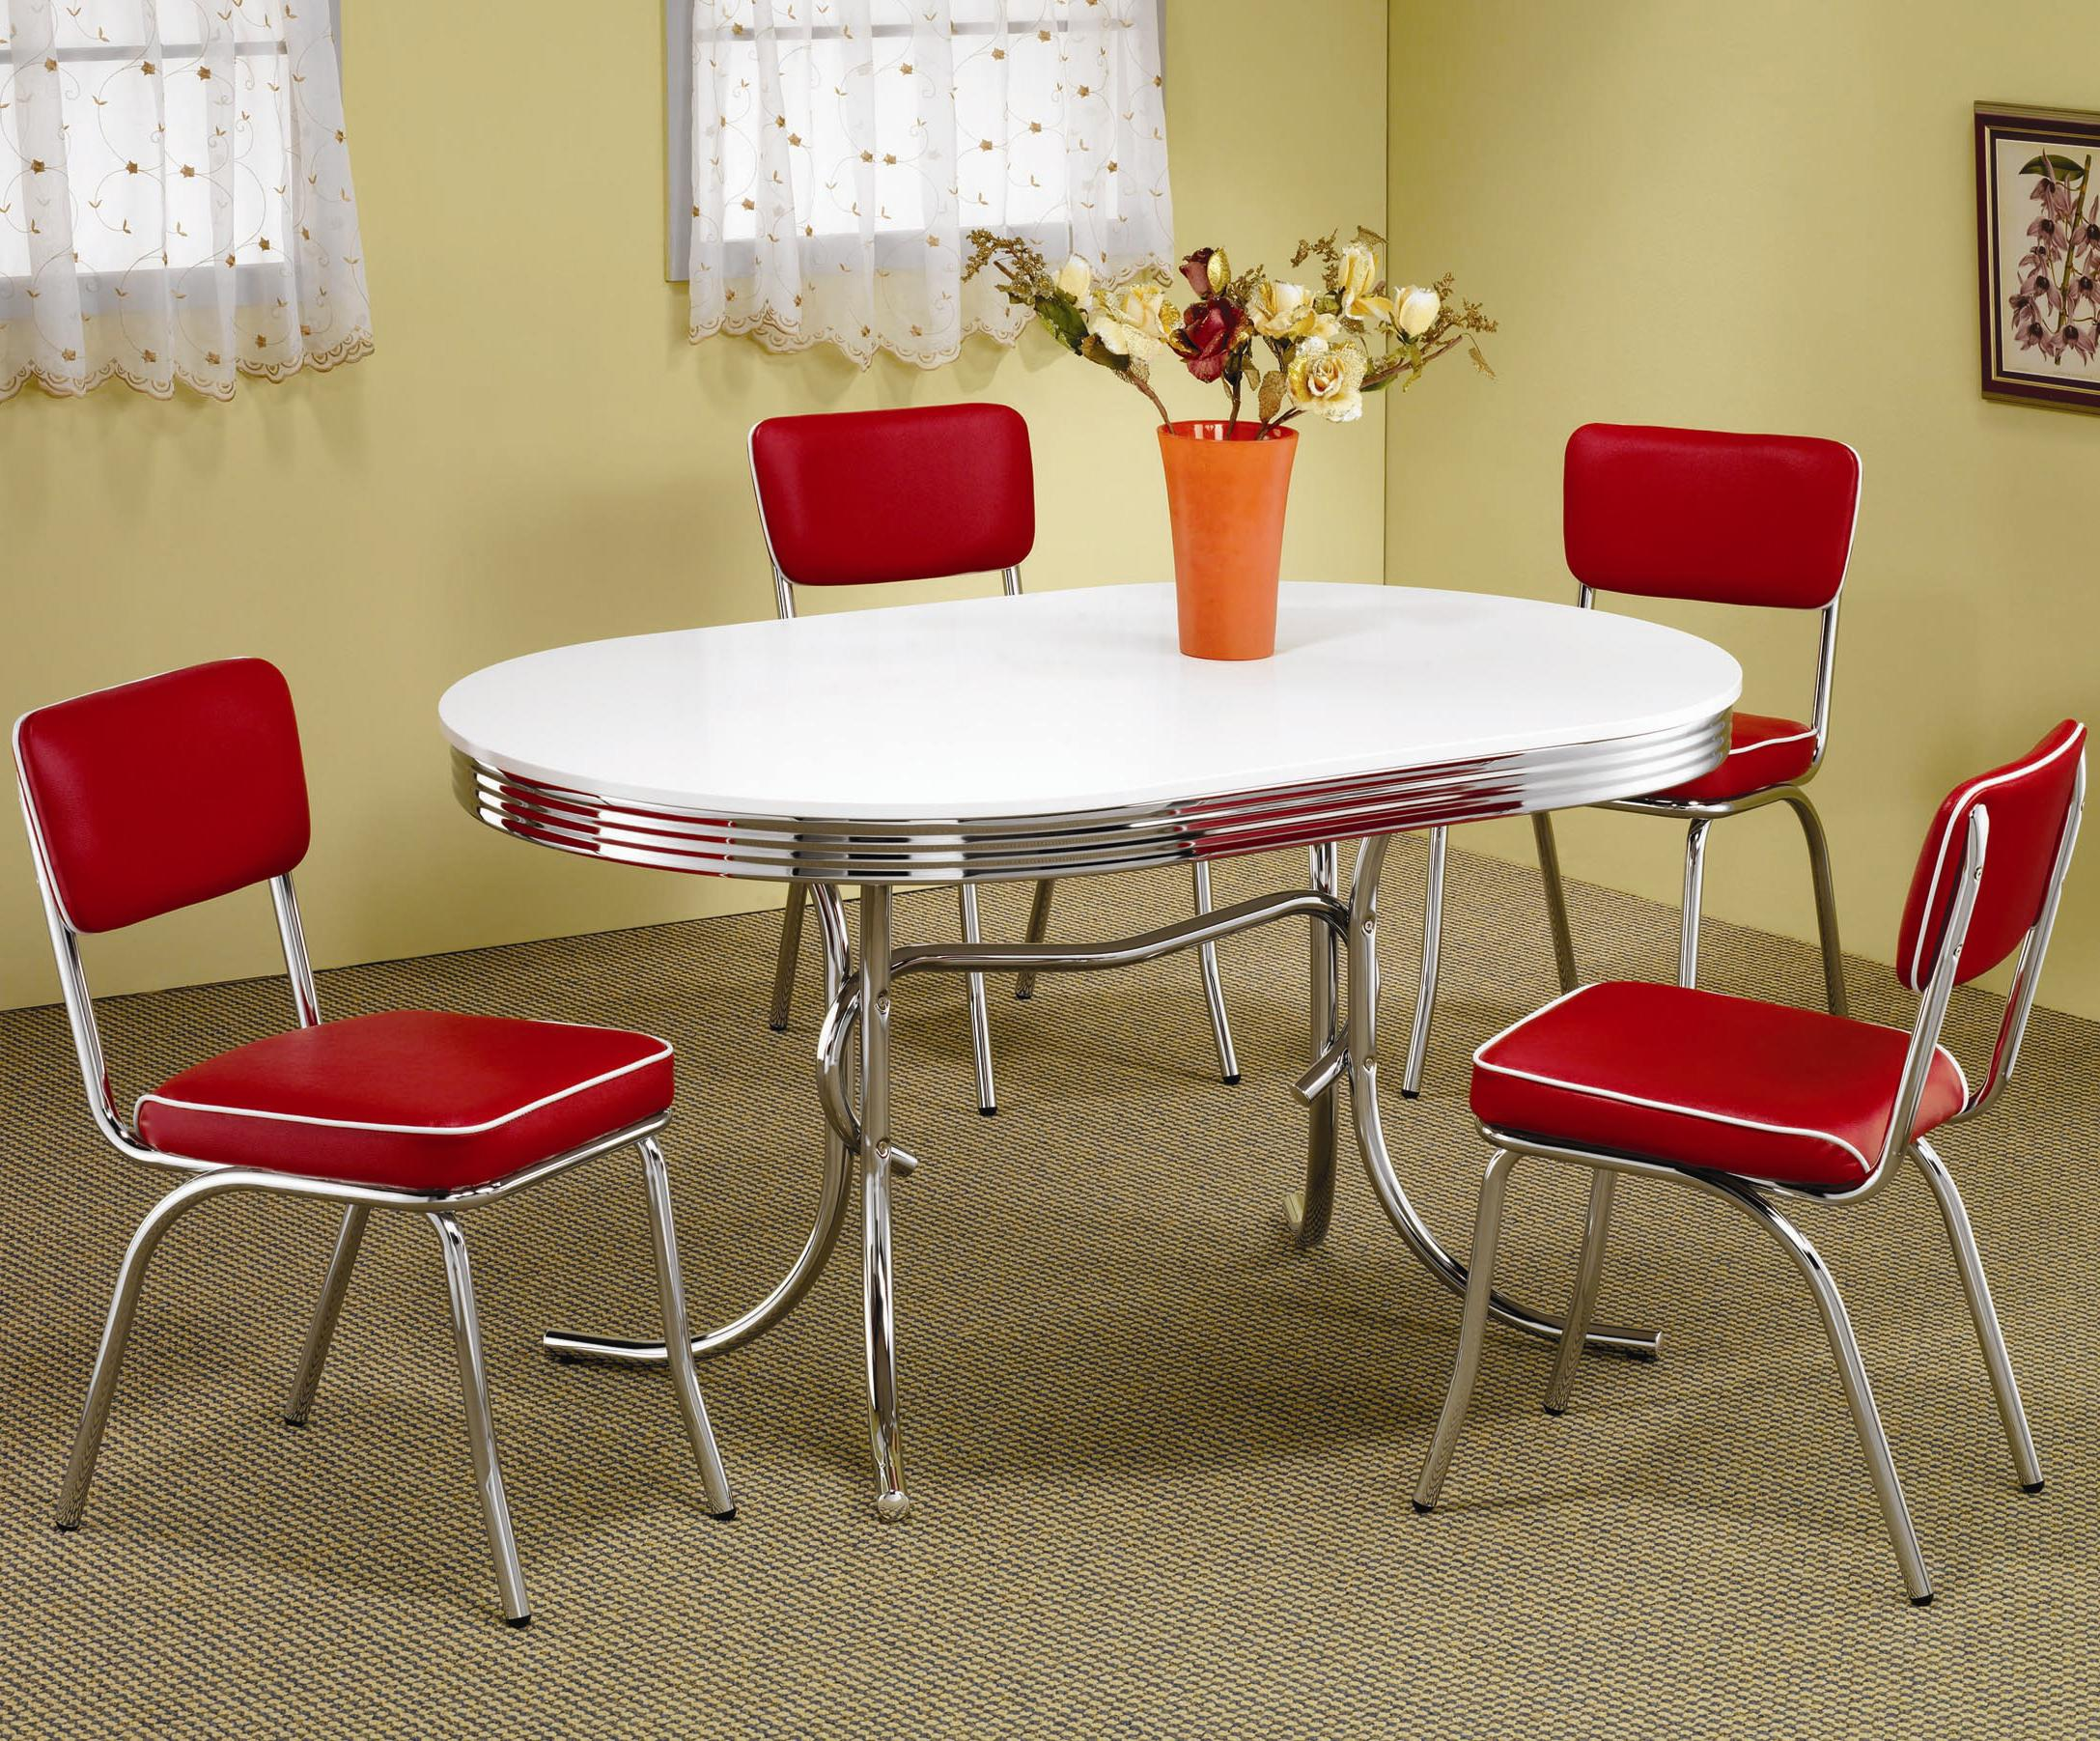 Cleveland 5 Piece Dining Set by Coaster at Northeast Factory Direct